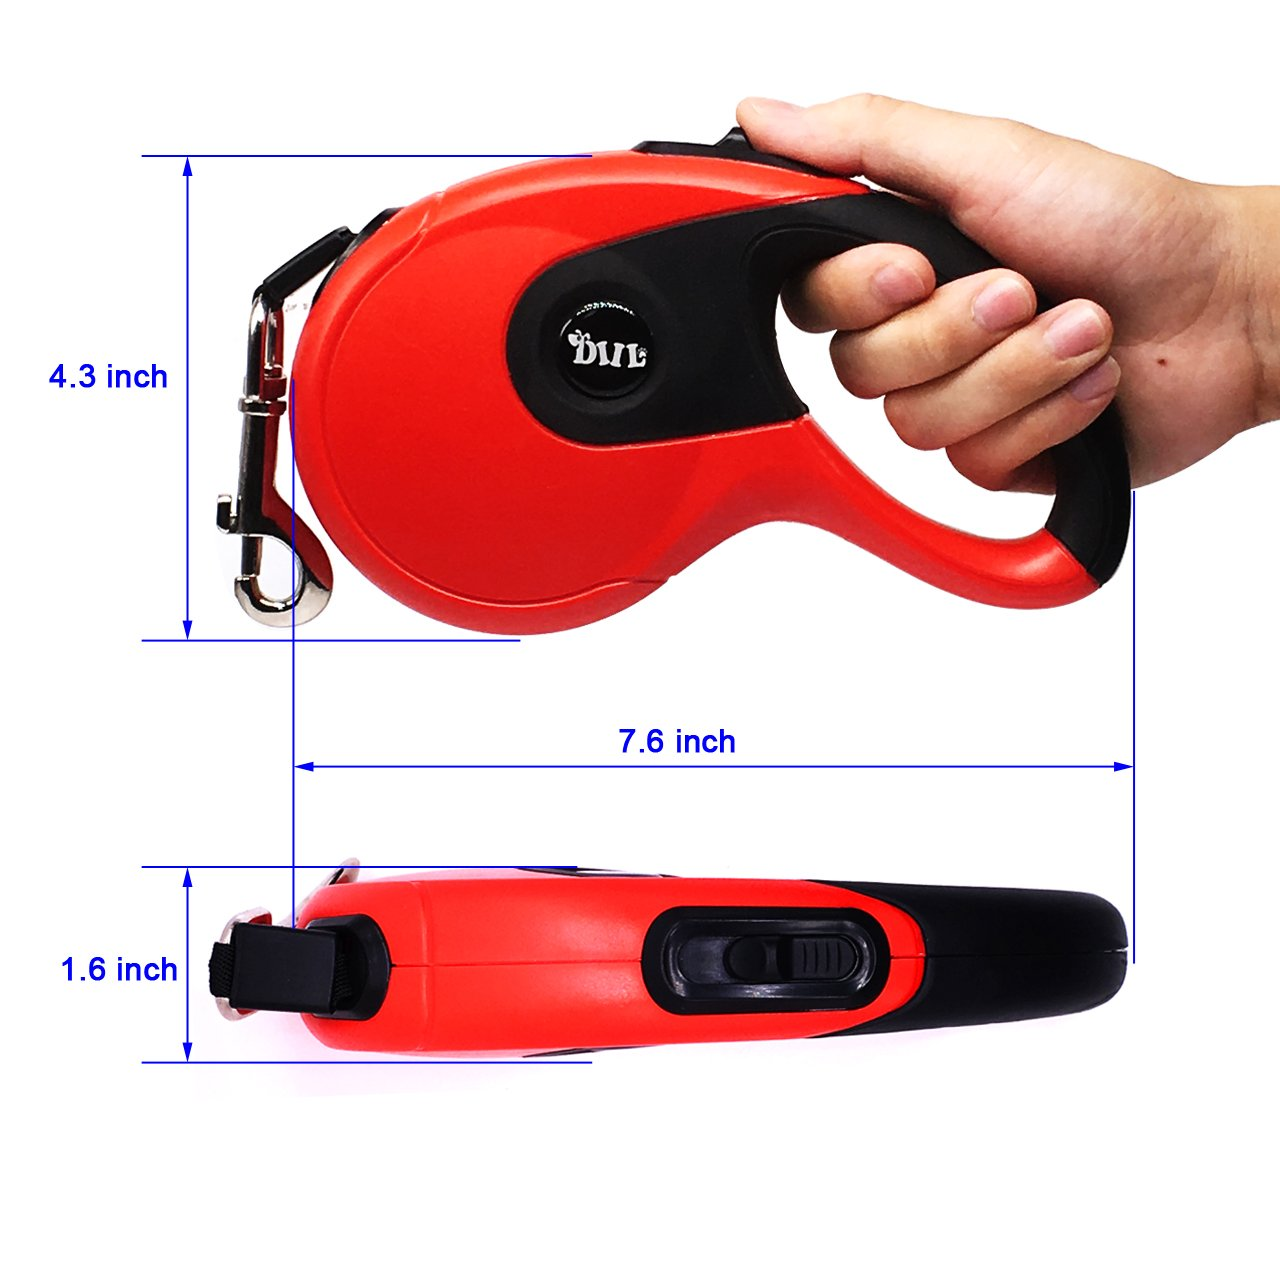 COODIA Retractable Dog Leash Dog Heavy Duty Automatic Lead Rope Walking Leash for Medium Large Pet Dogs up to 85lbs Tangle Free,16Ft,One Button Break & Lock